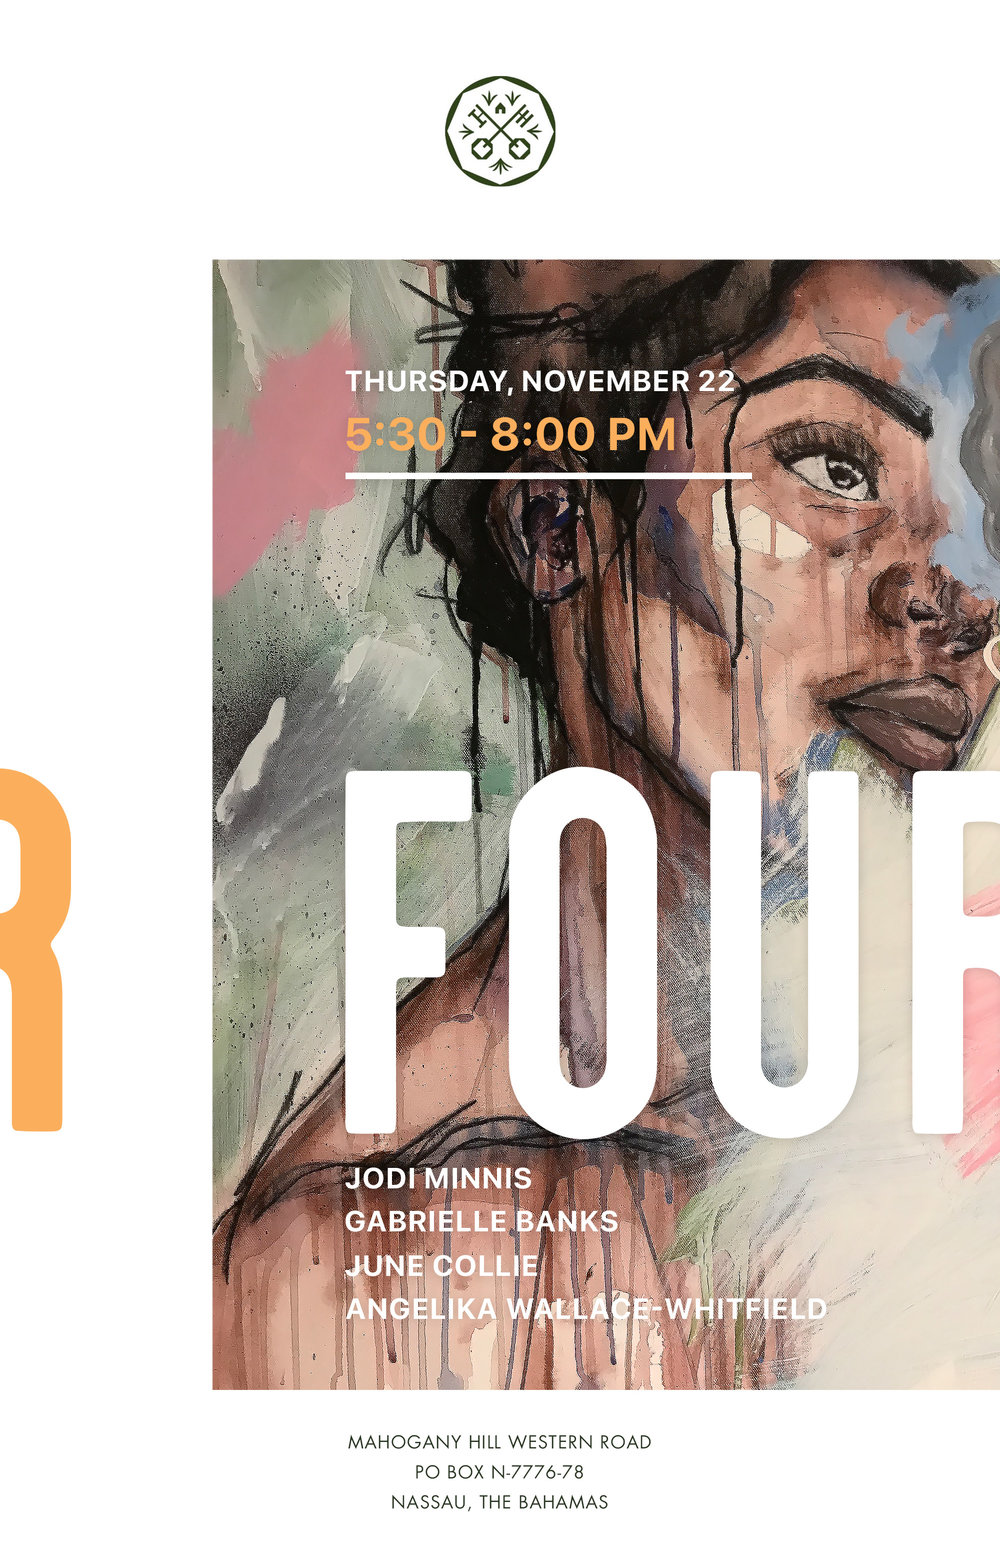 FOUR exhibition flyer designed by artist Piaget Moss, featuring artwork by Angelika Wallace-Whitfield.